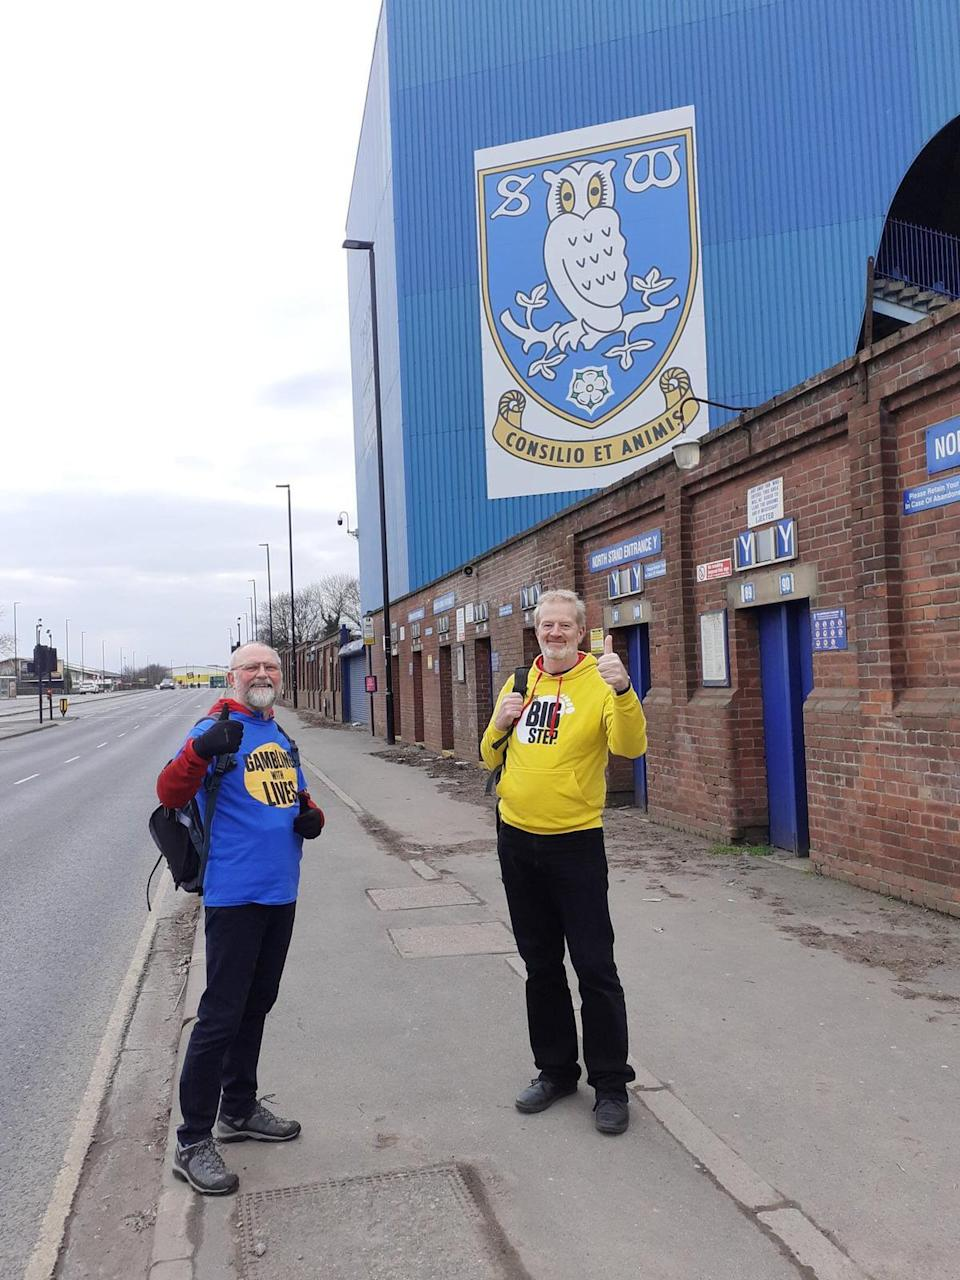 Charles Ritchie, right, and Alistair Dempster, outside Sheffield Wednesday's ground on Saturday (The Big Step)